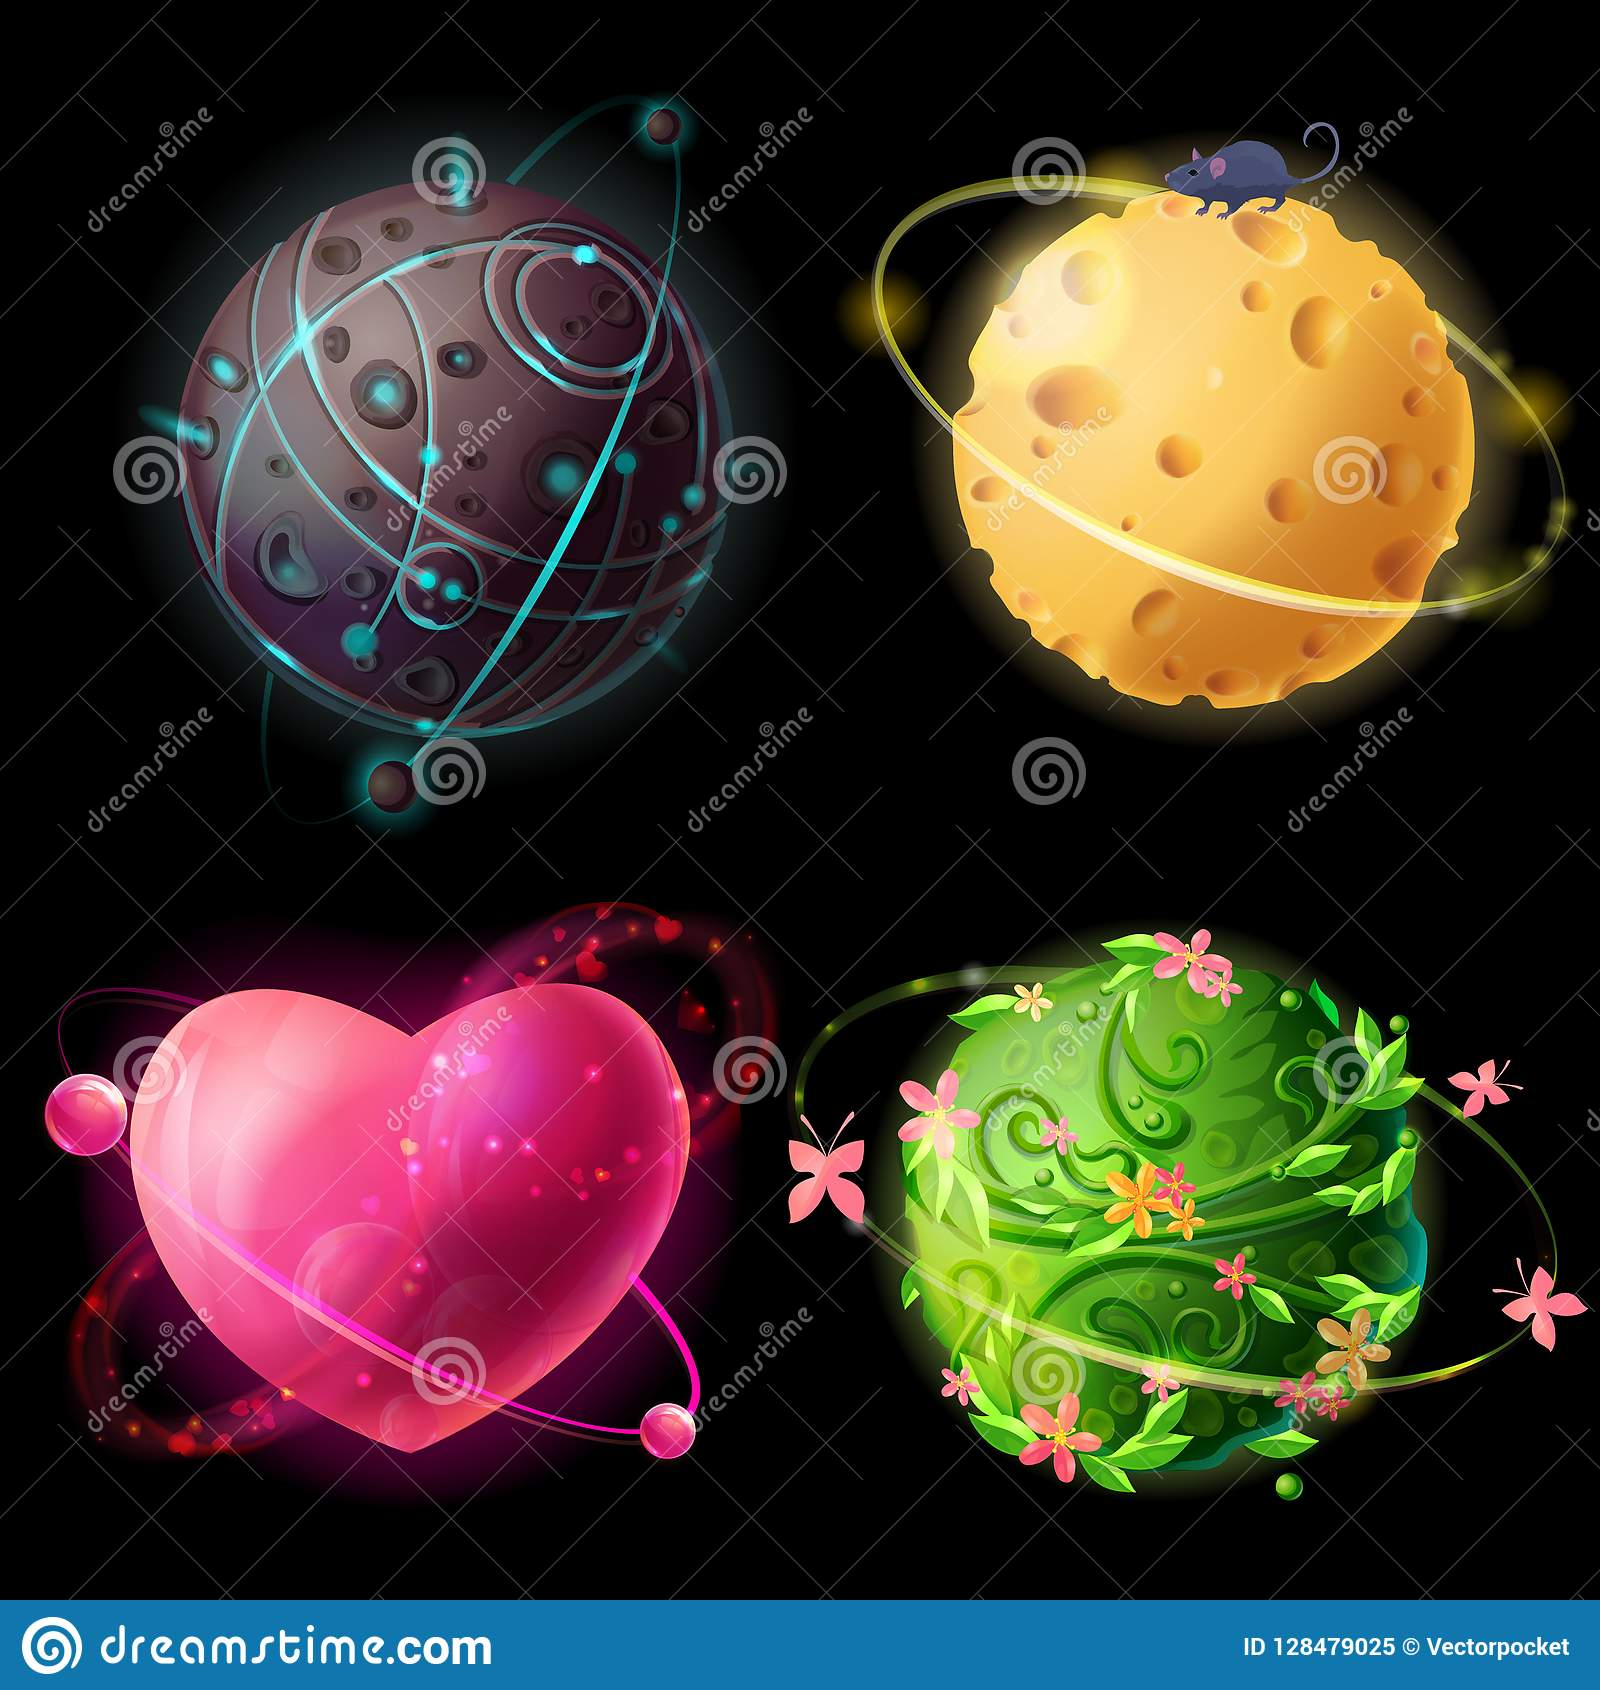 Fantastic Cosmic Aliene Elements For Game Design Extraterrestrial Cheese Love Plants Planets Il Ration Galaxies Set Concept For Gui Ui